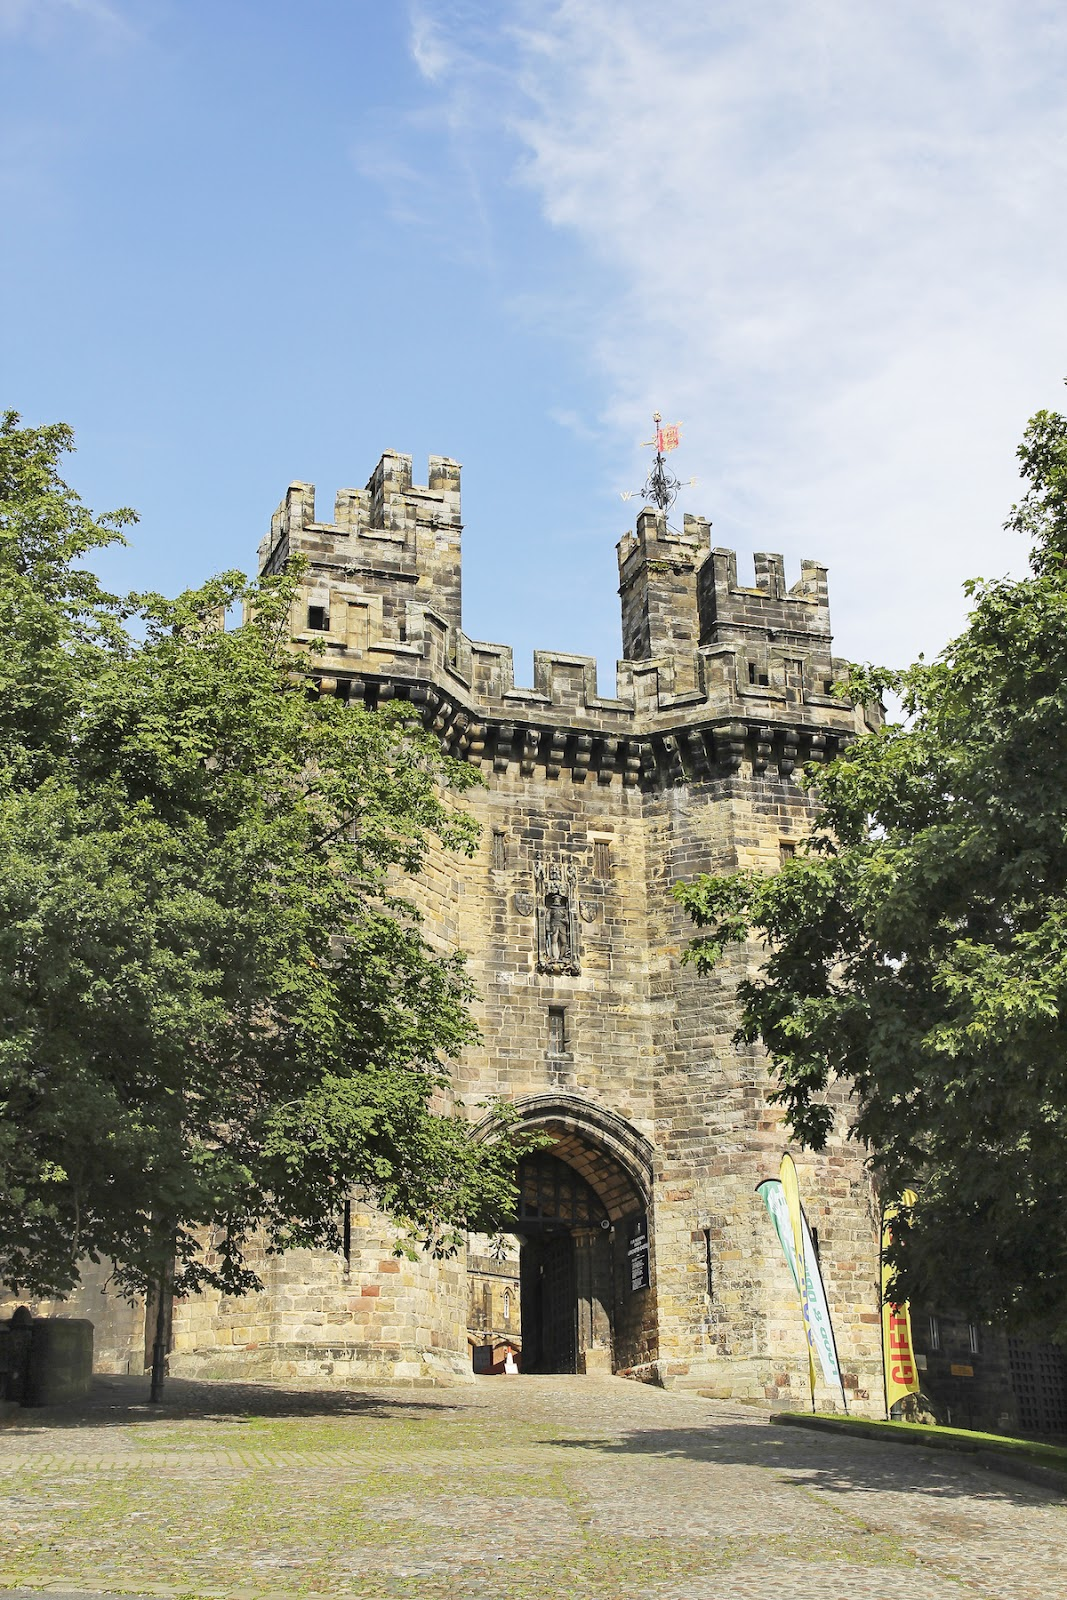 Lancaster Castle in Lancashire. Source: Business Insider Malaysia